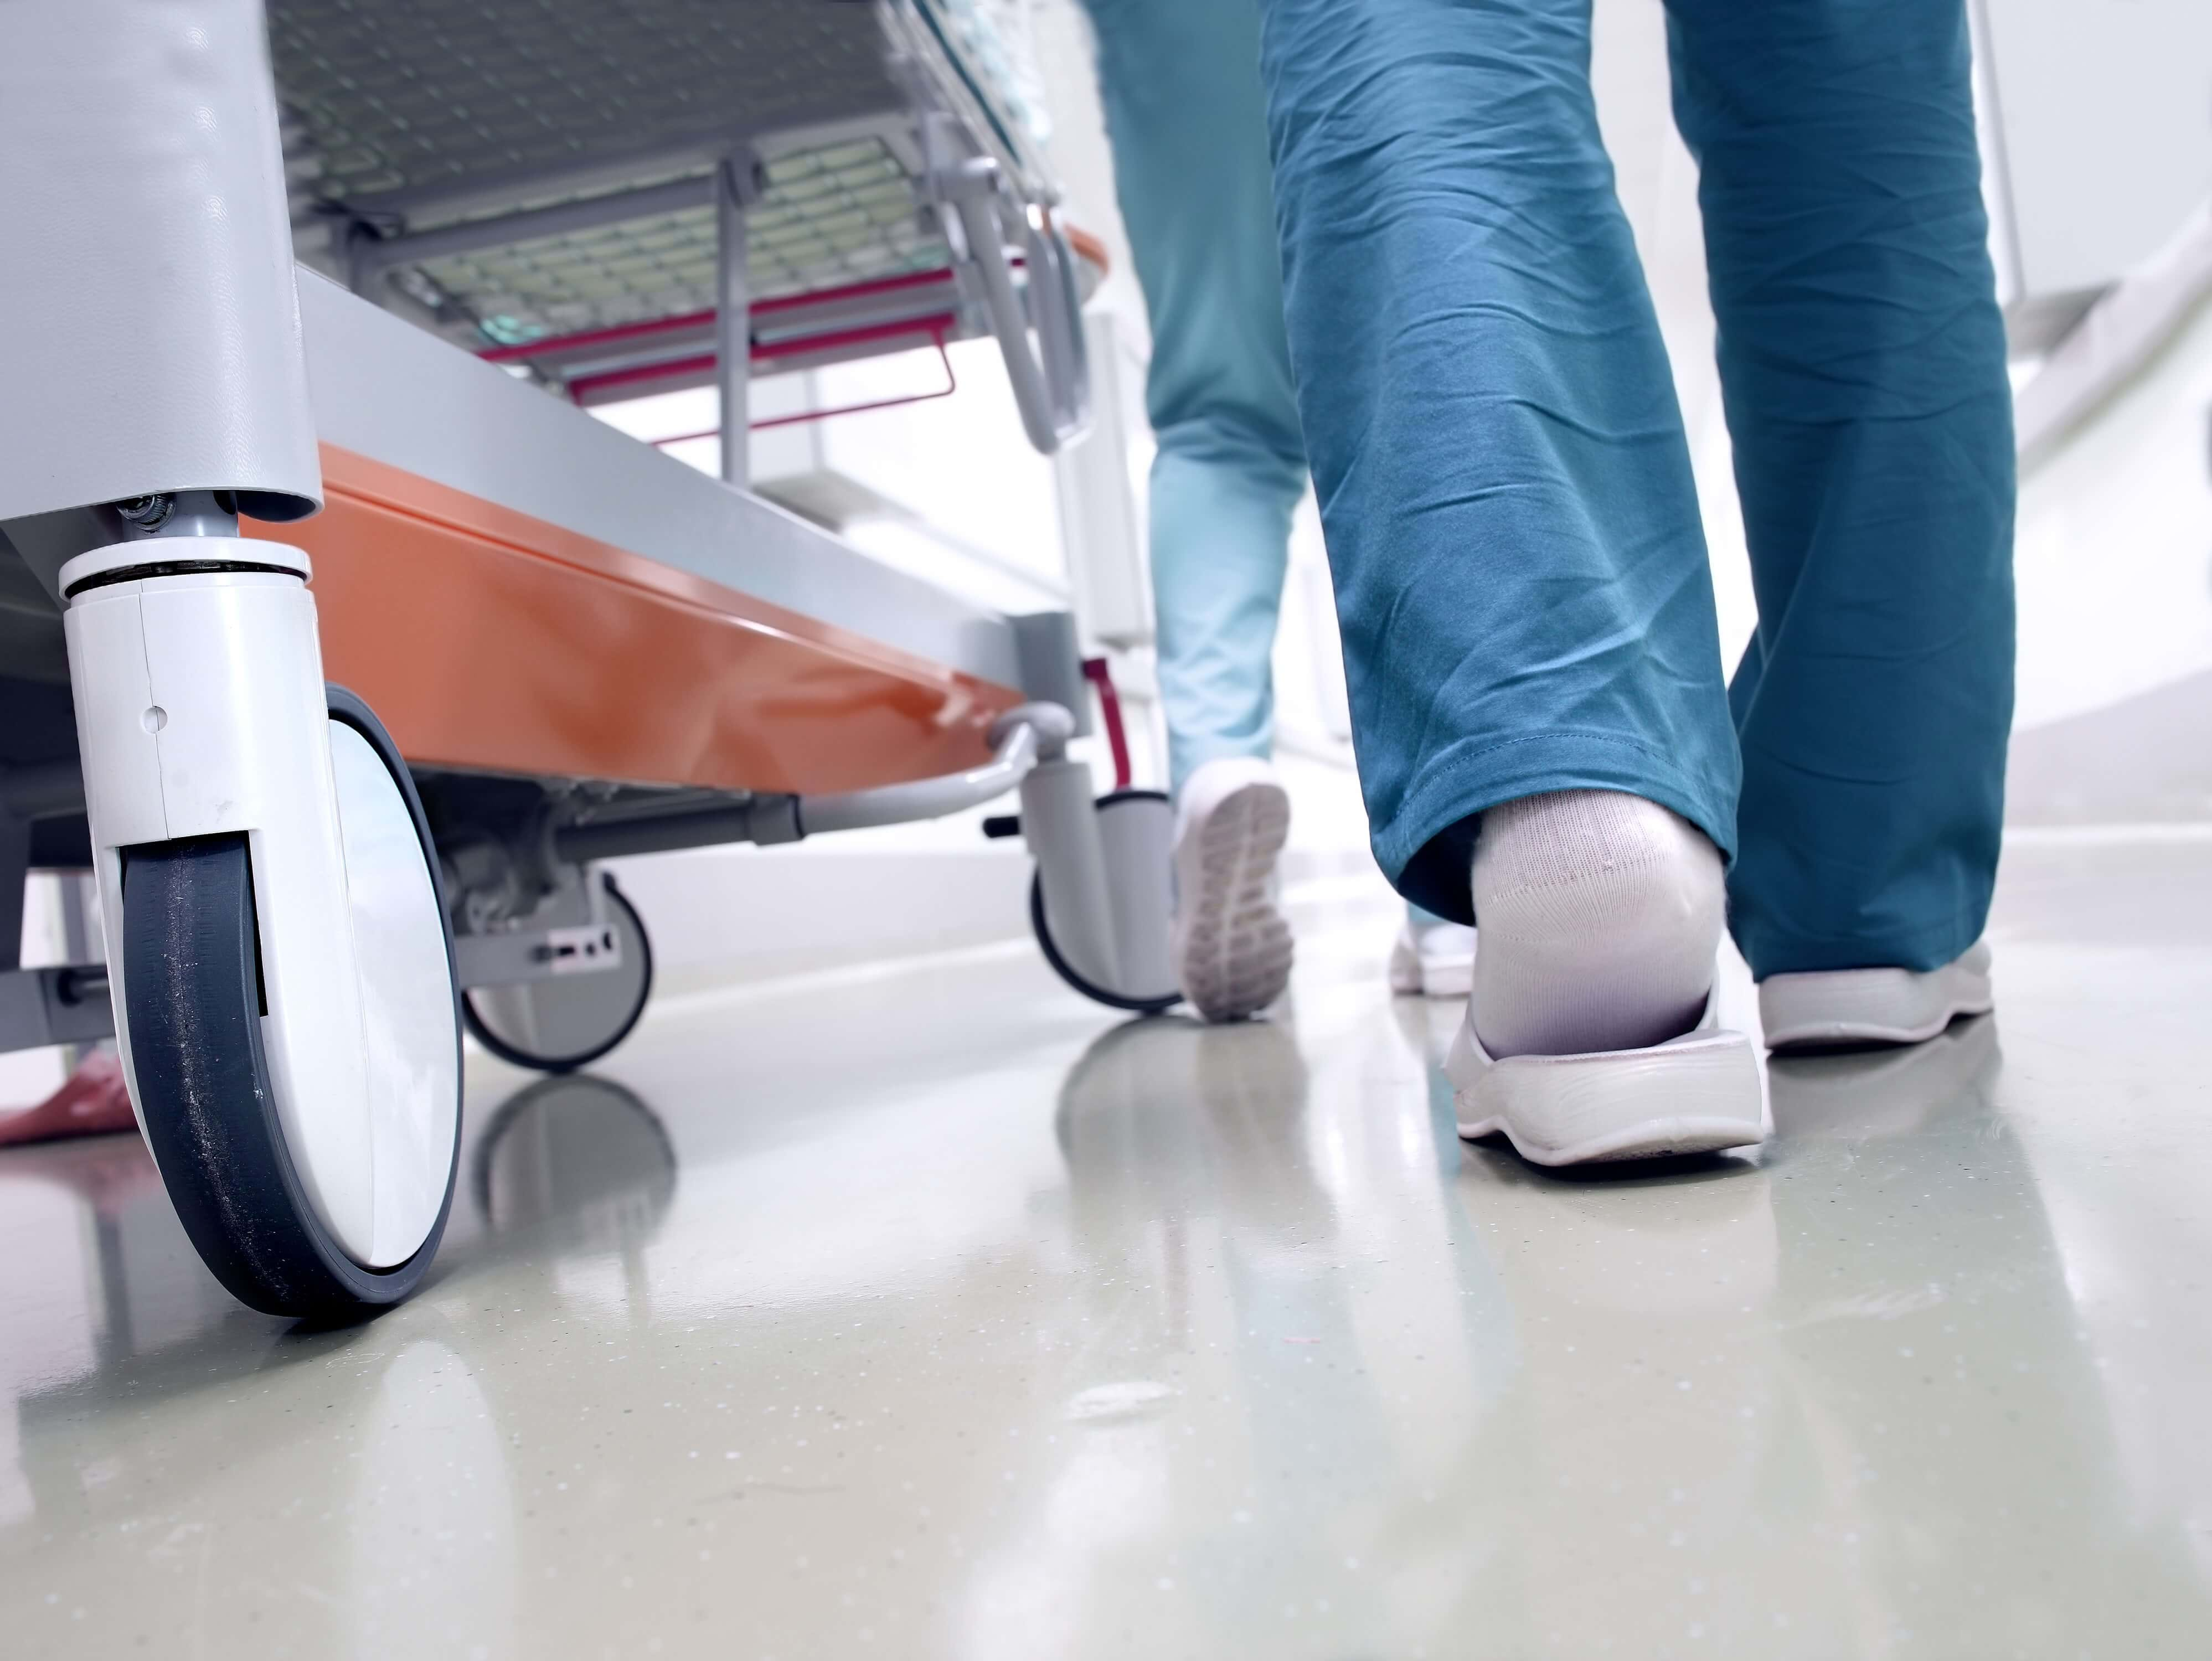 A patient trolley being pushed by a member of staff through a hospital